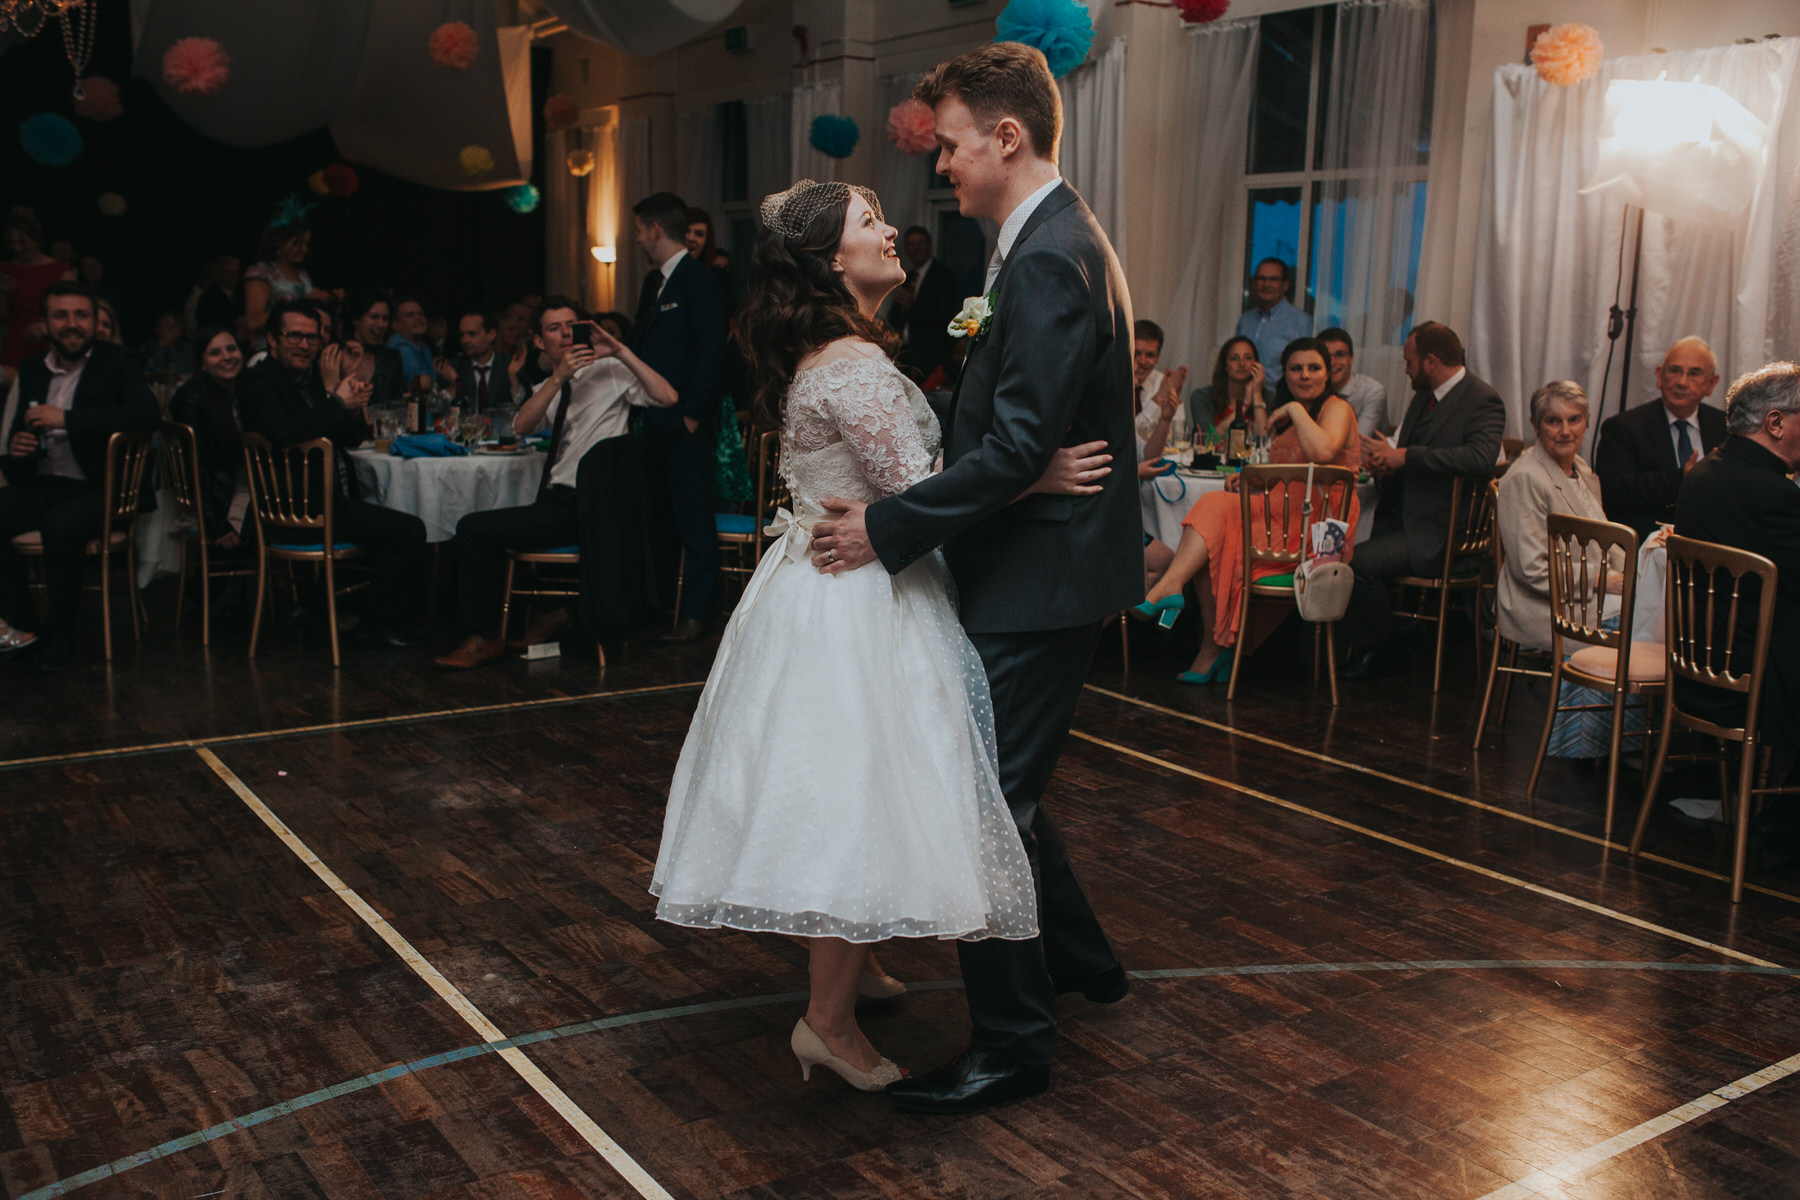 253 bride first dance groom school hall wedding reception London.jpg